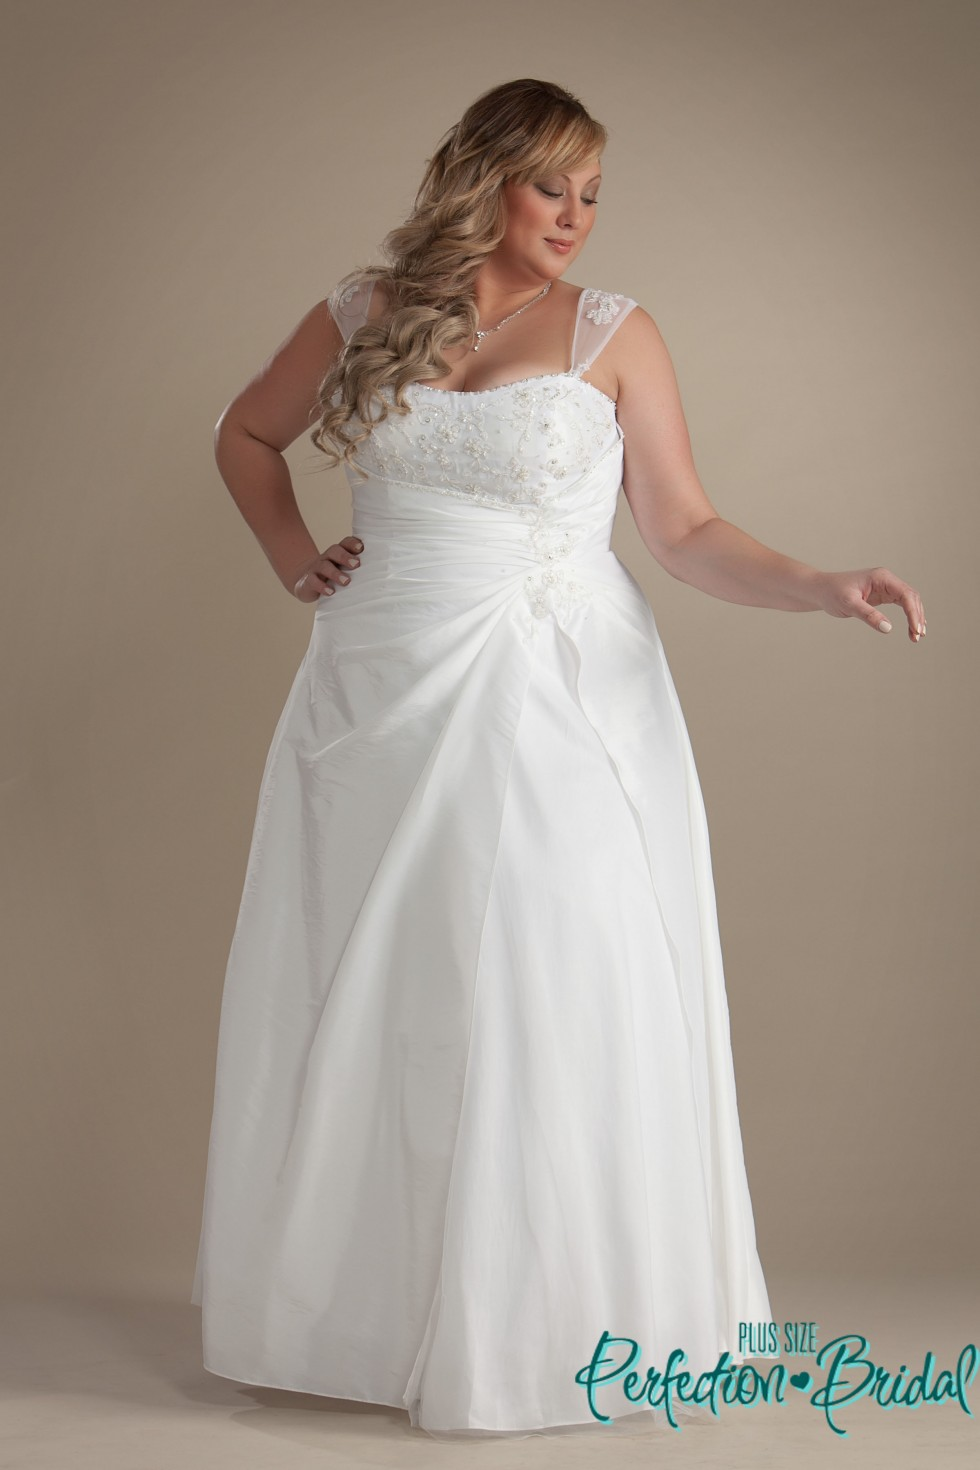 Plus Size Wedding Dresses Australia Cheap Eligent Prom Dresses